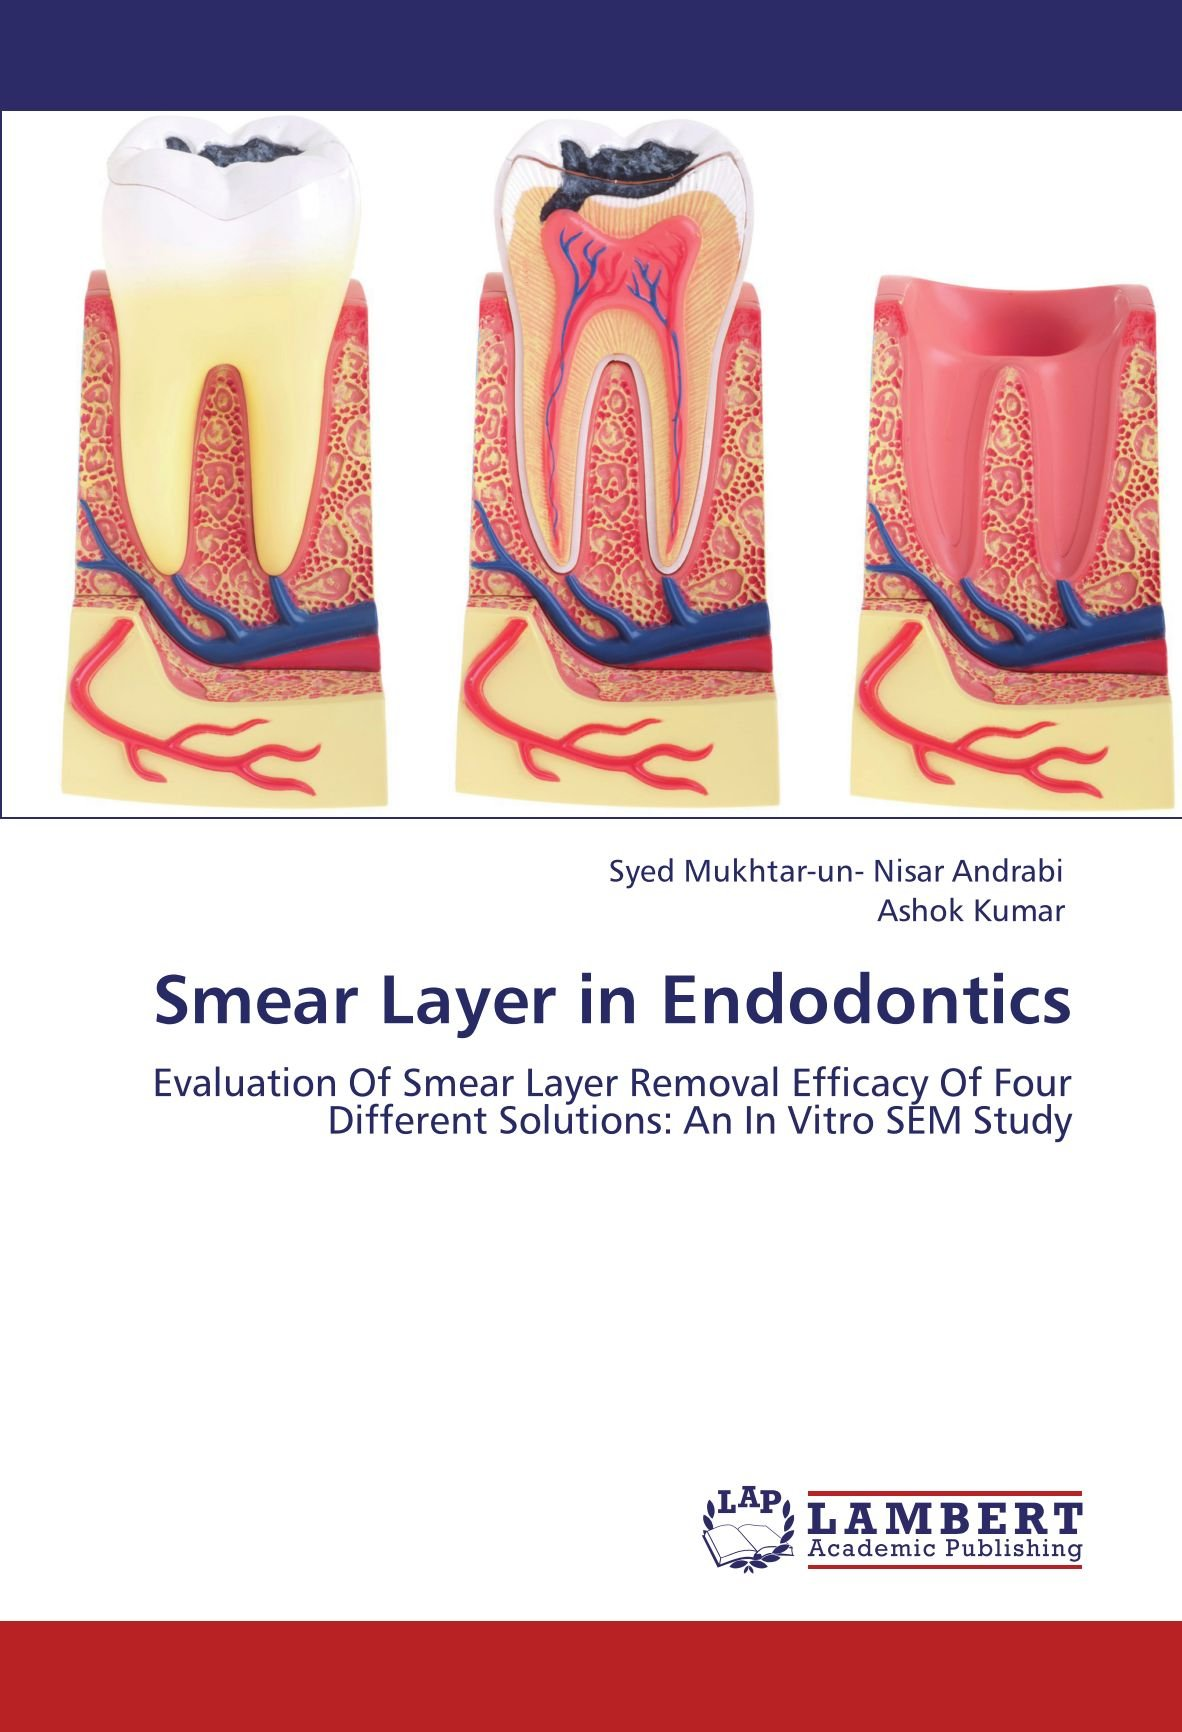 Smear Layer in Endodontics: Evaluation Of Smear Layer Removal Efficacy Of Four Different Solutions: An In Vitro SEM Study